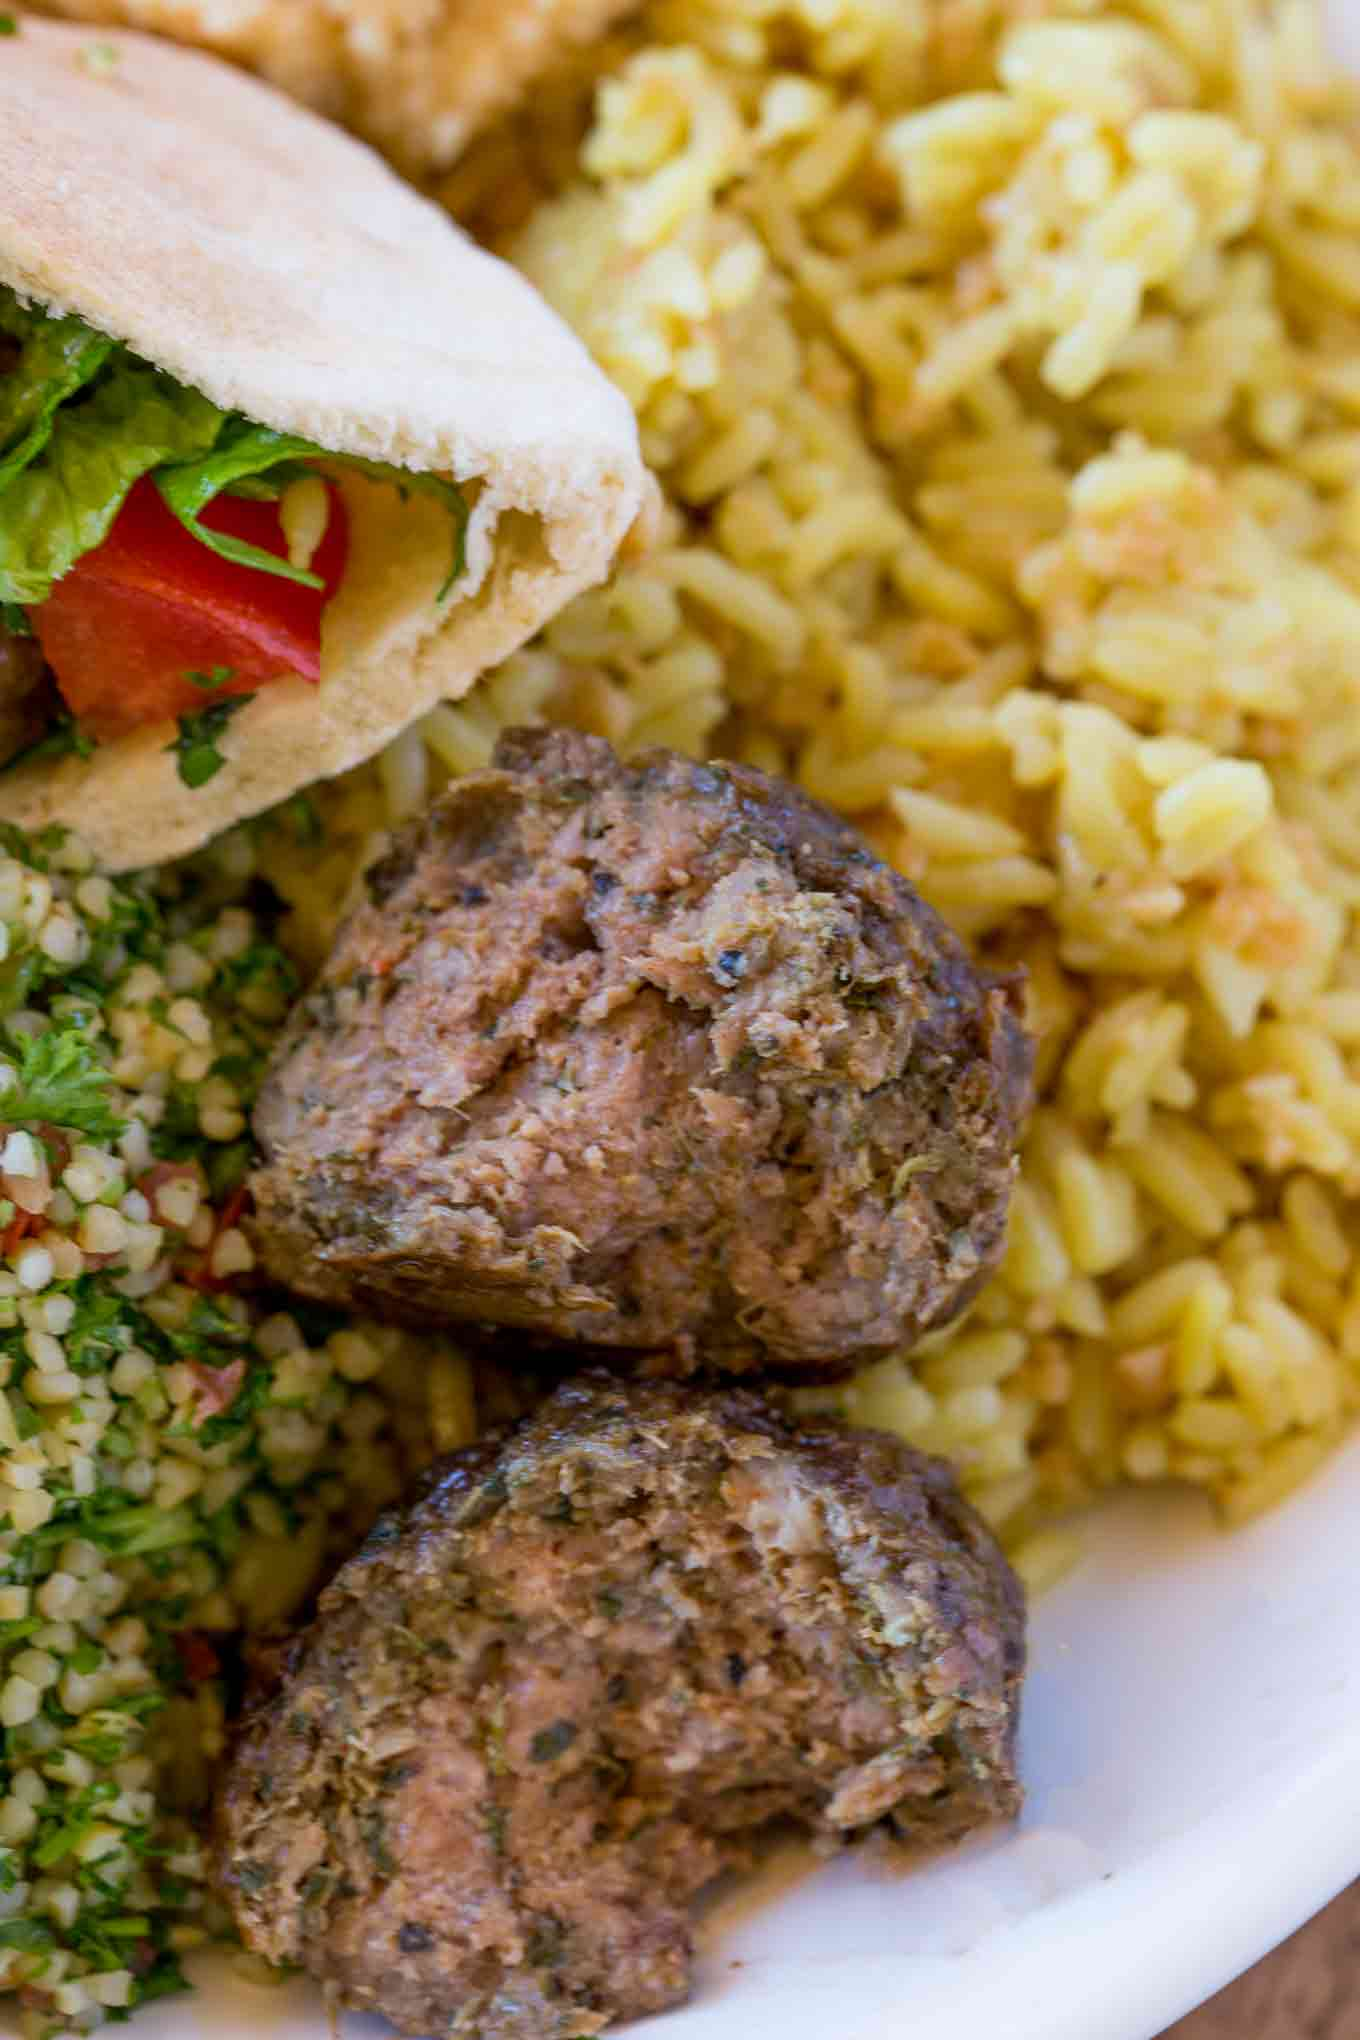 Beef kofte kebabs with rice